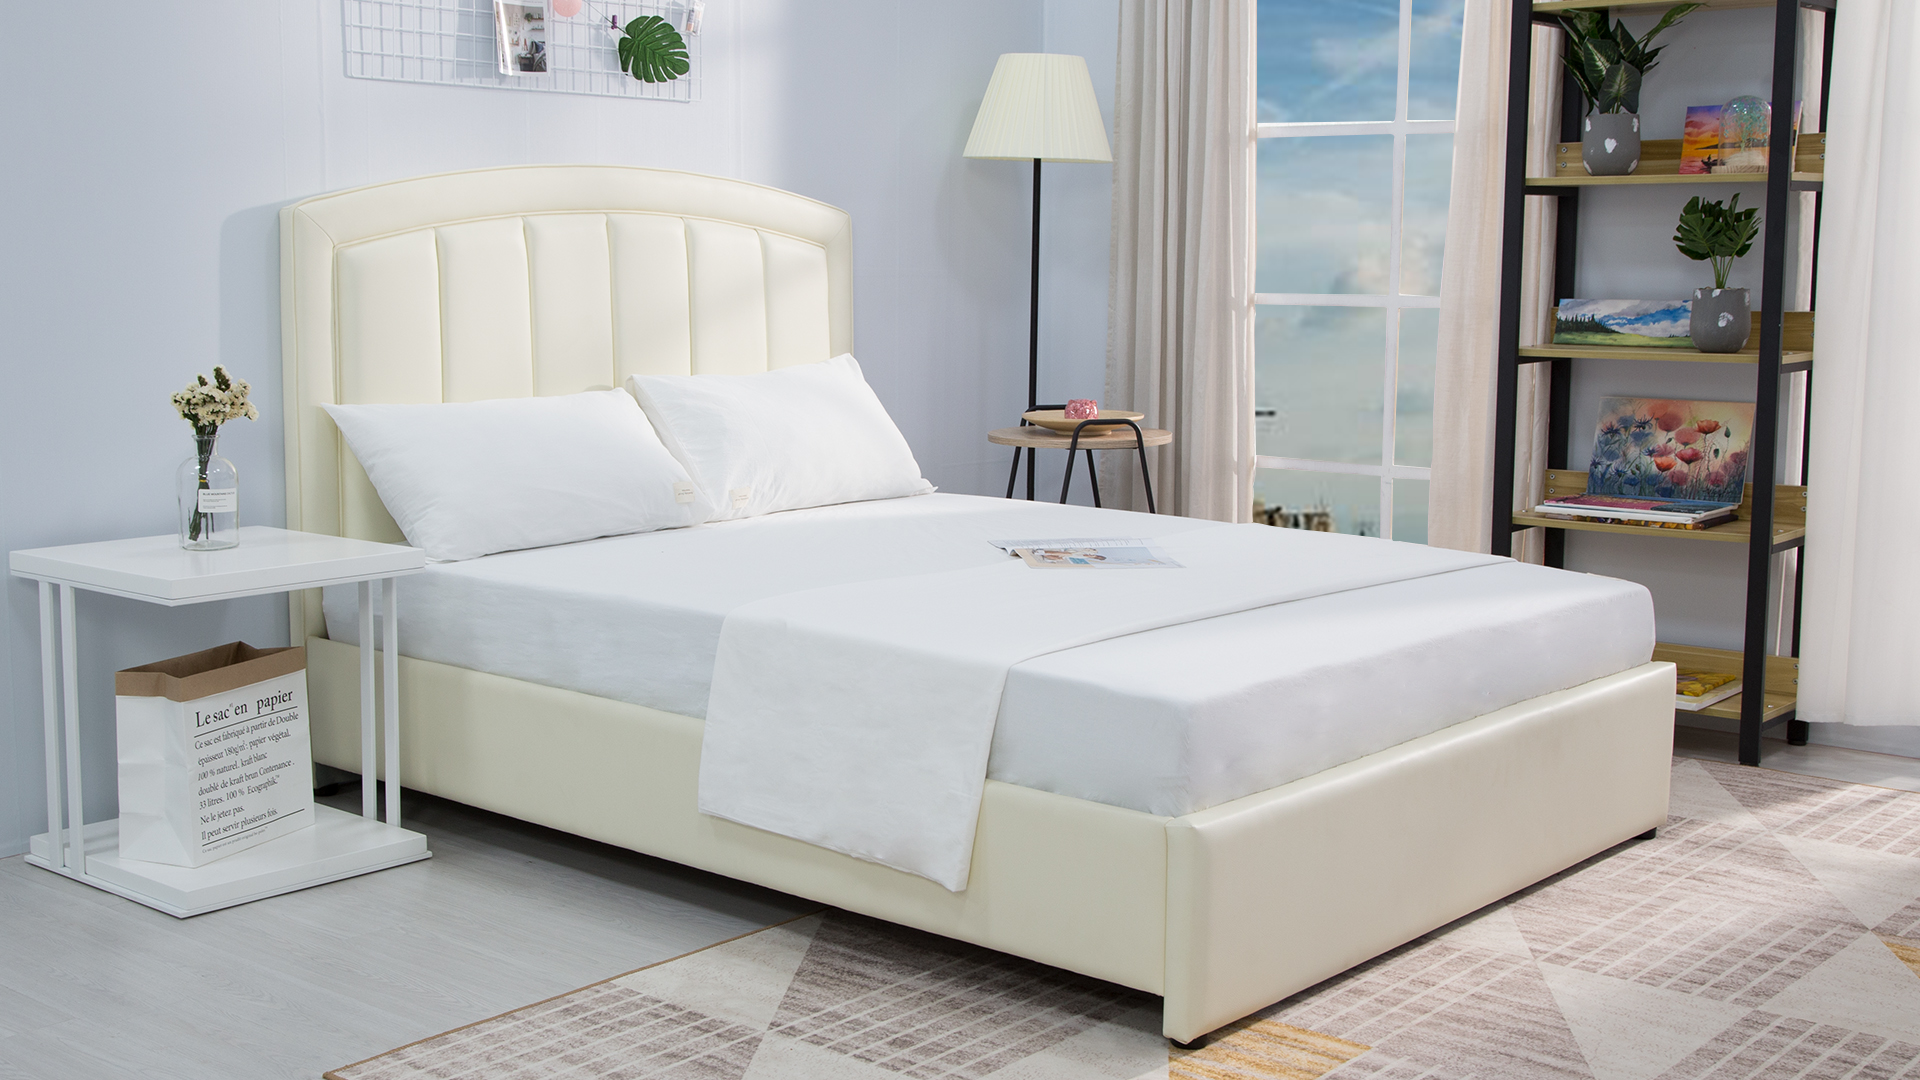 Bed linen cover wooden box bed design antique style air inflatable round beds set murphy mechanism